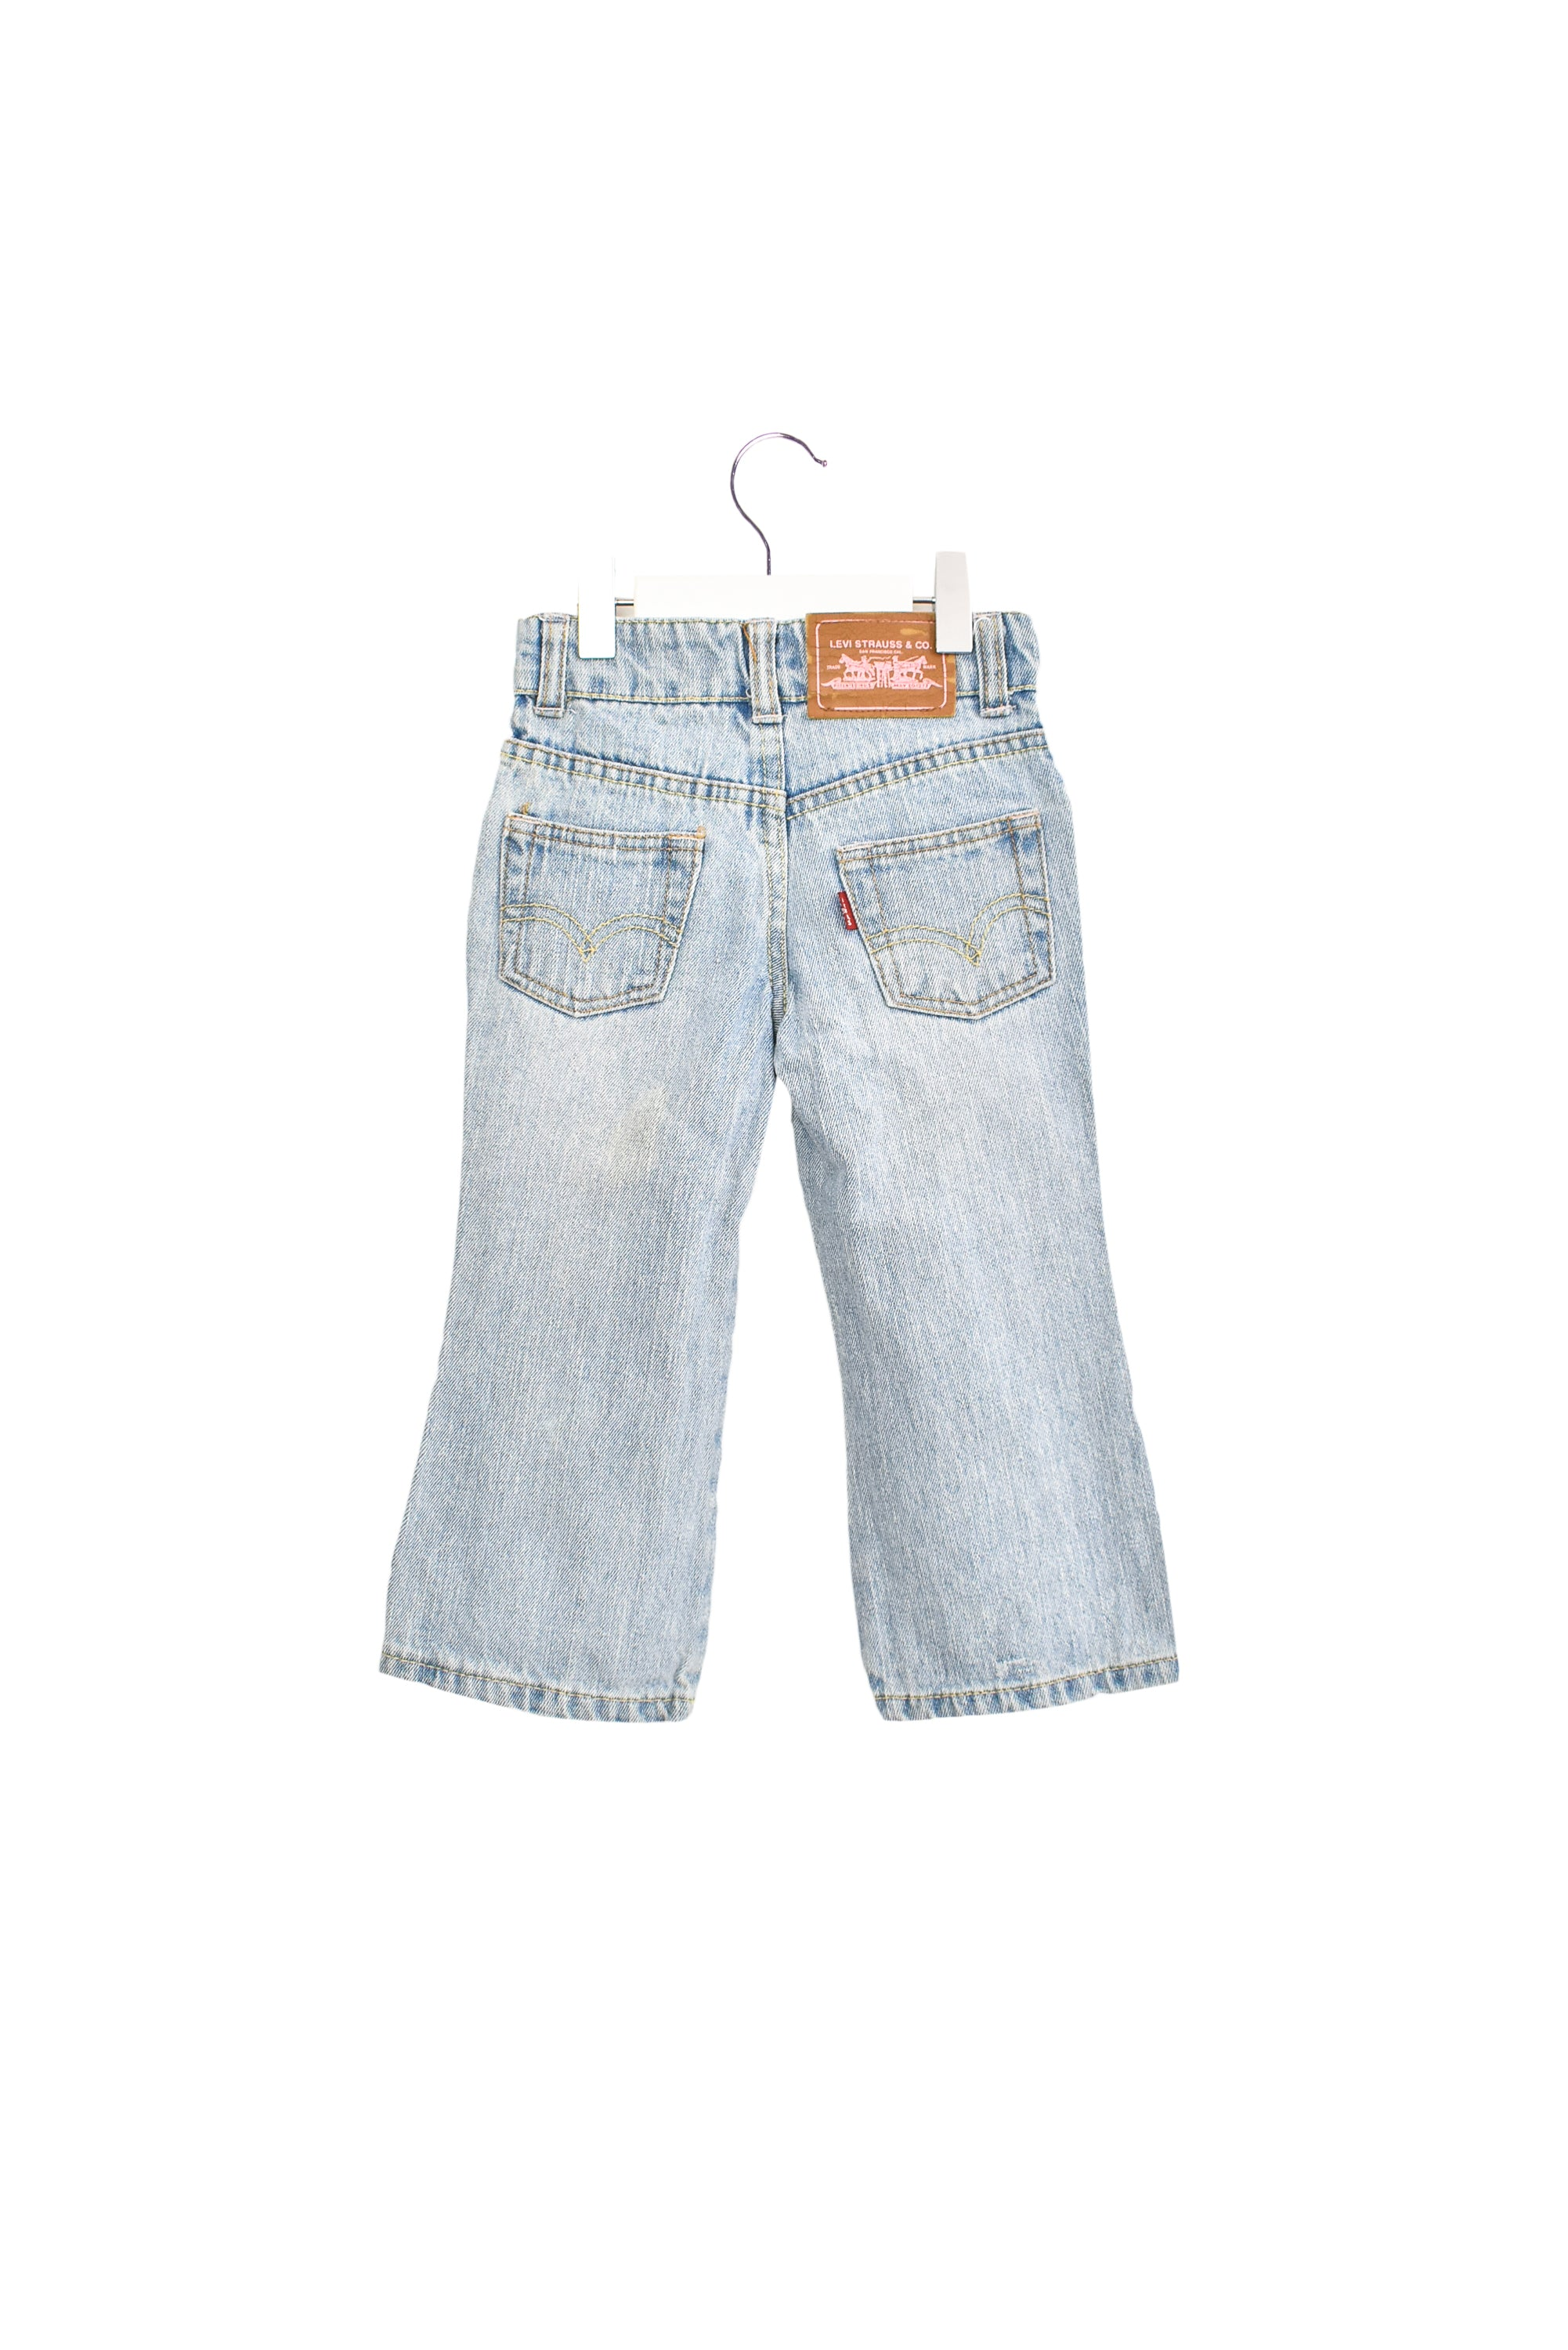 Levi's at Retykle | Online Shopping Discount Baby & Kids Clothes Hong Kong